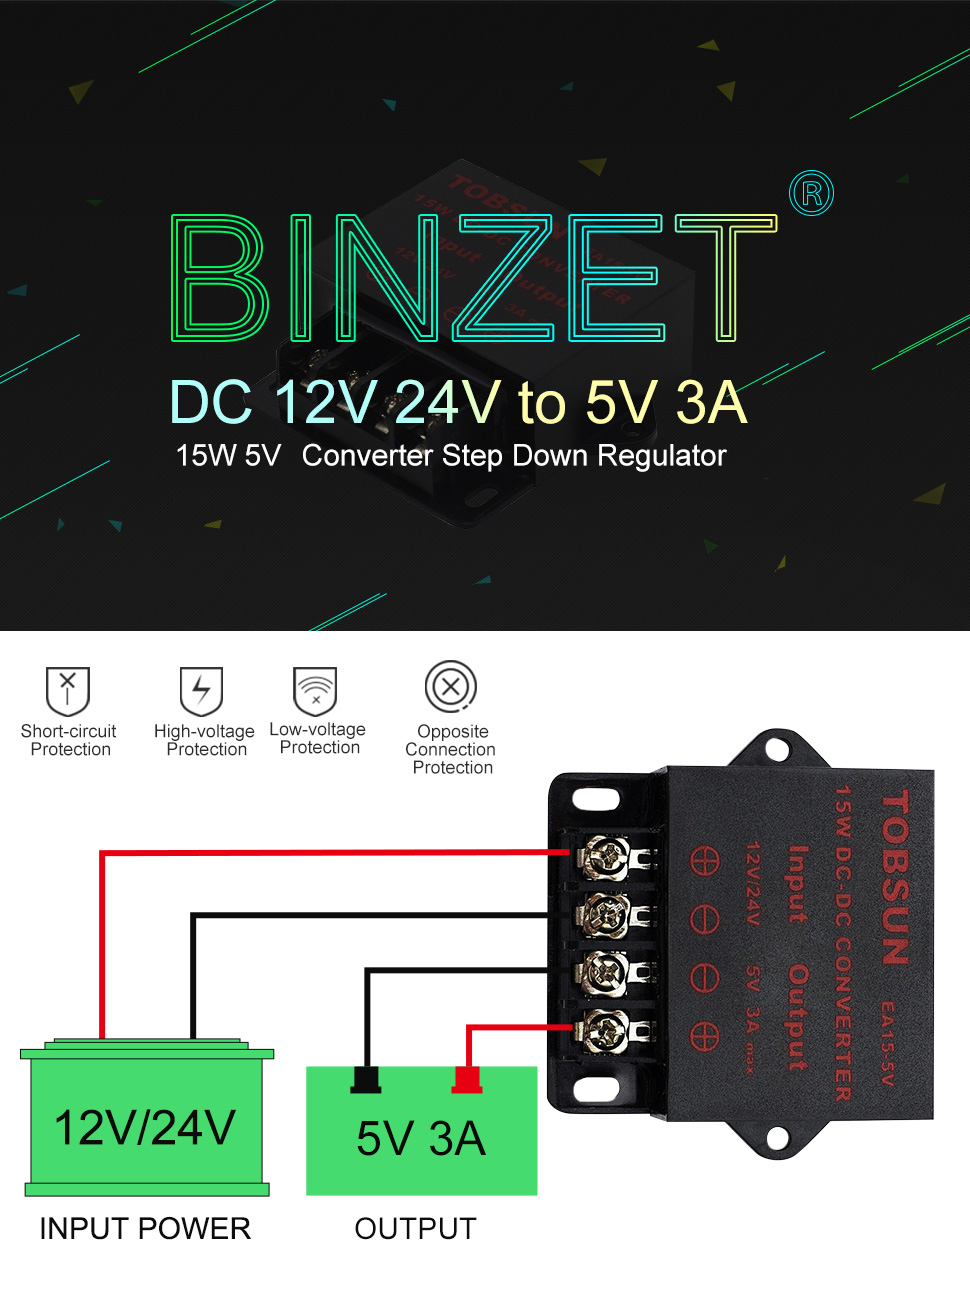 Binzet Dc Converter Step Down Regulator 5v Regulated Boost Dcdc Converters Power Content From Electronic Design 3a 15w Over Voltage Protection Current Overheat Short Circuit And Automatic